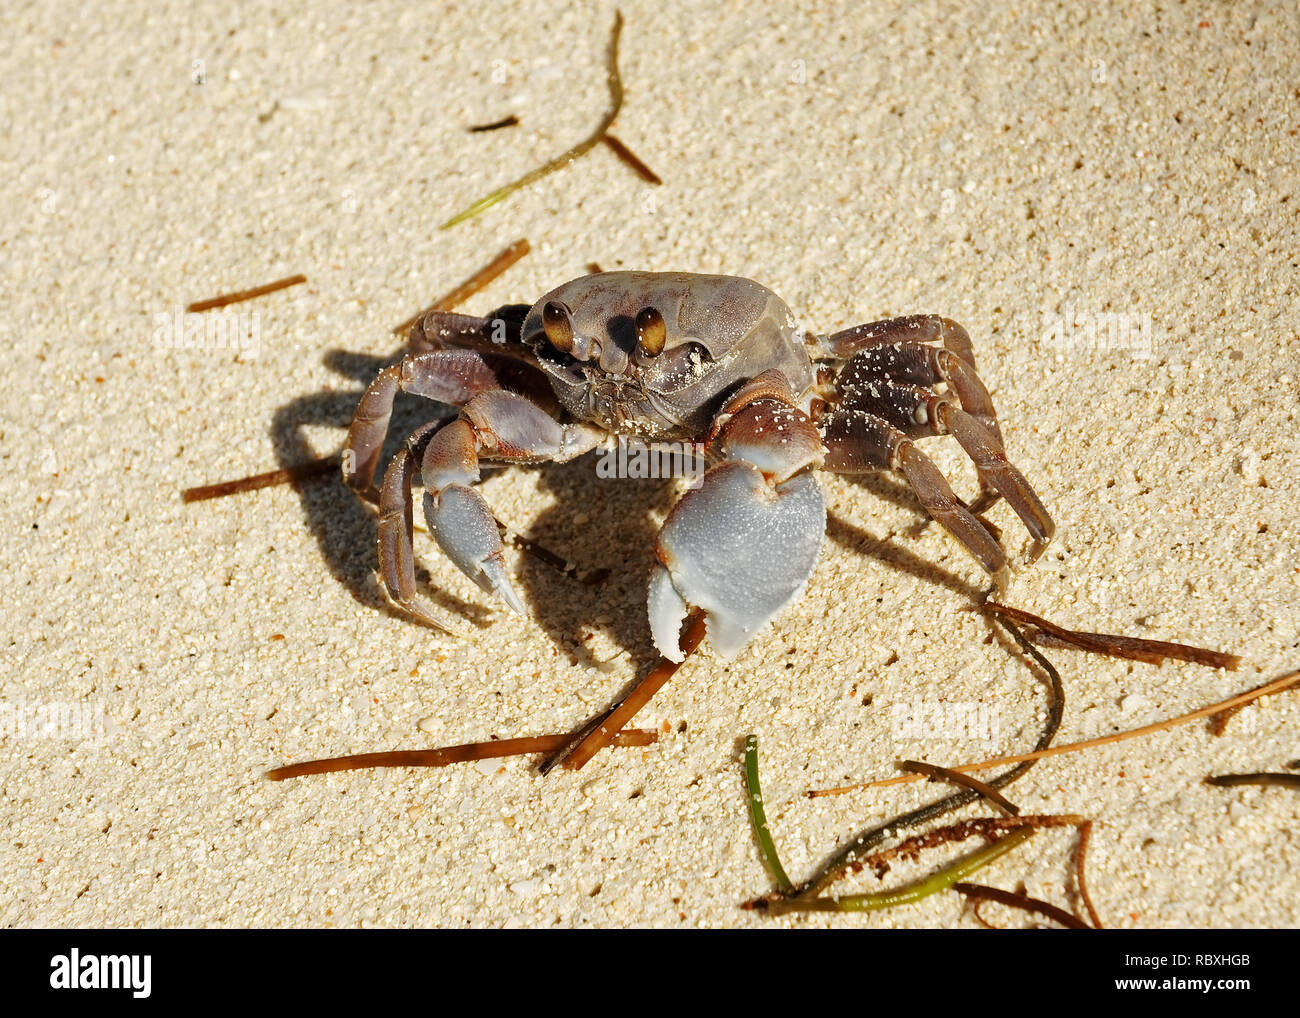 Close-up of a Gray-colored Ghost crab (Ocypode cordimanus) on the beach - Location: Seychelles Stock Photo